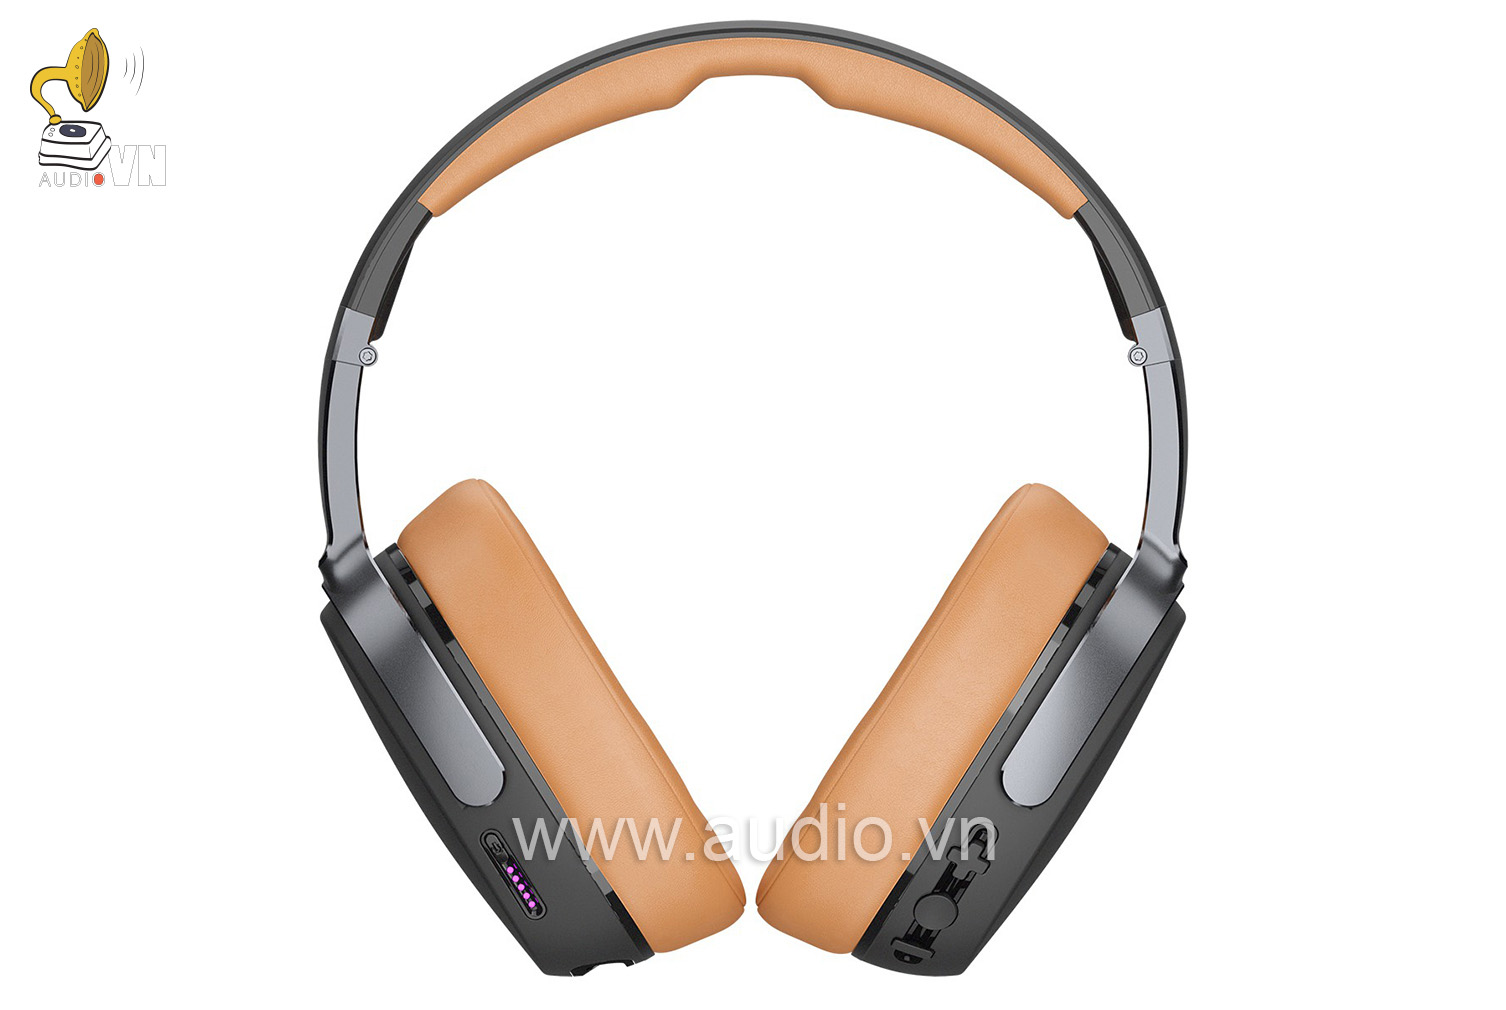 Skullcandy Crusher VRA Wireless Over-ear